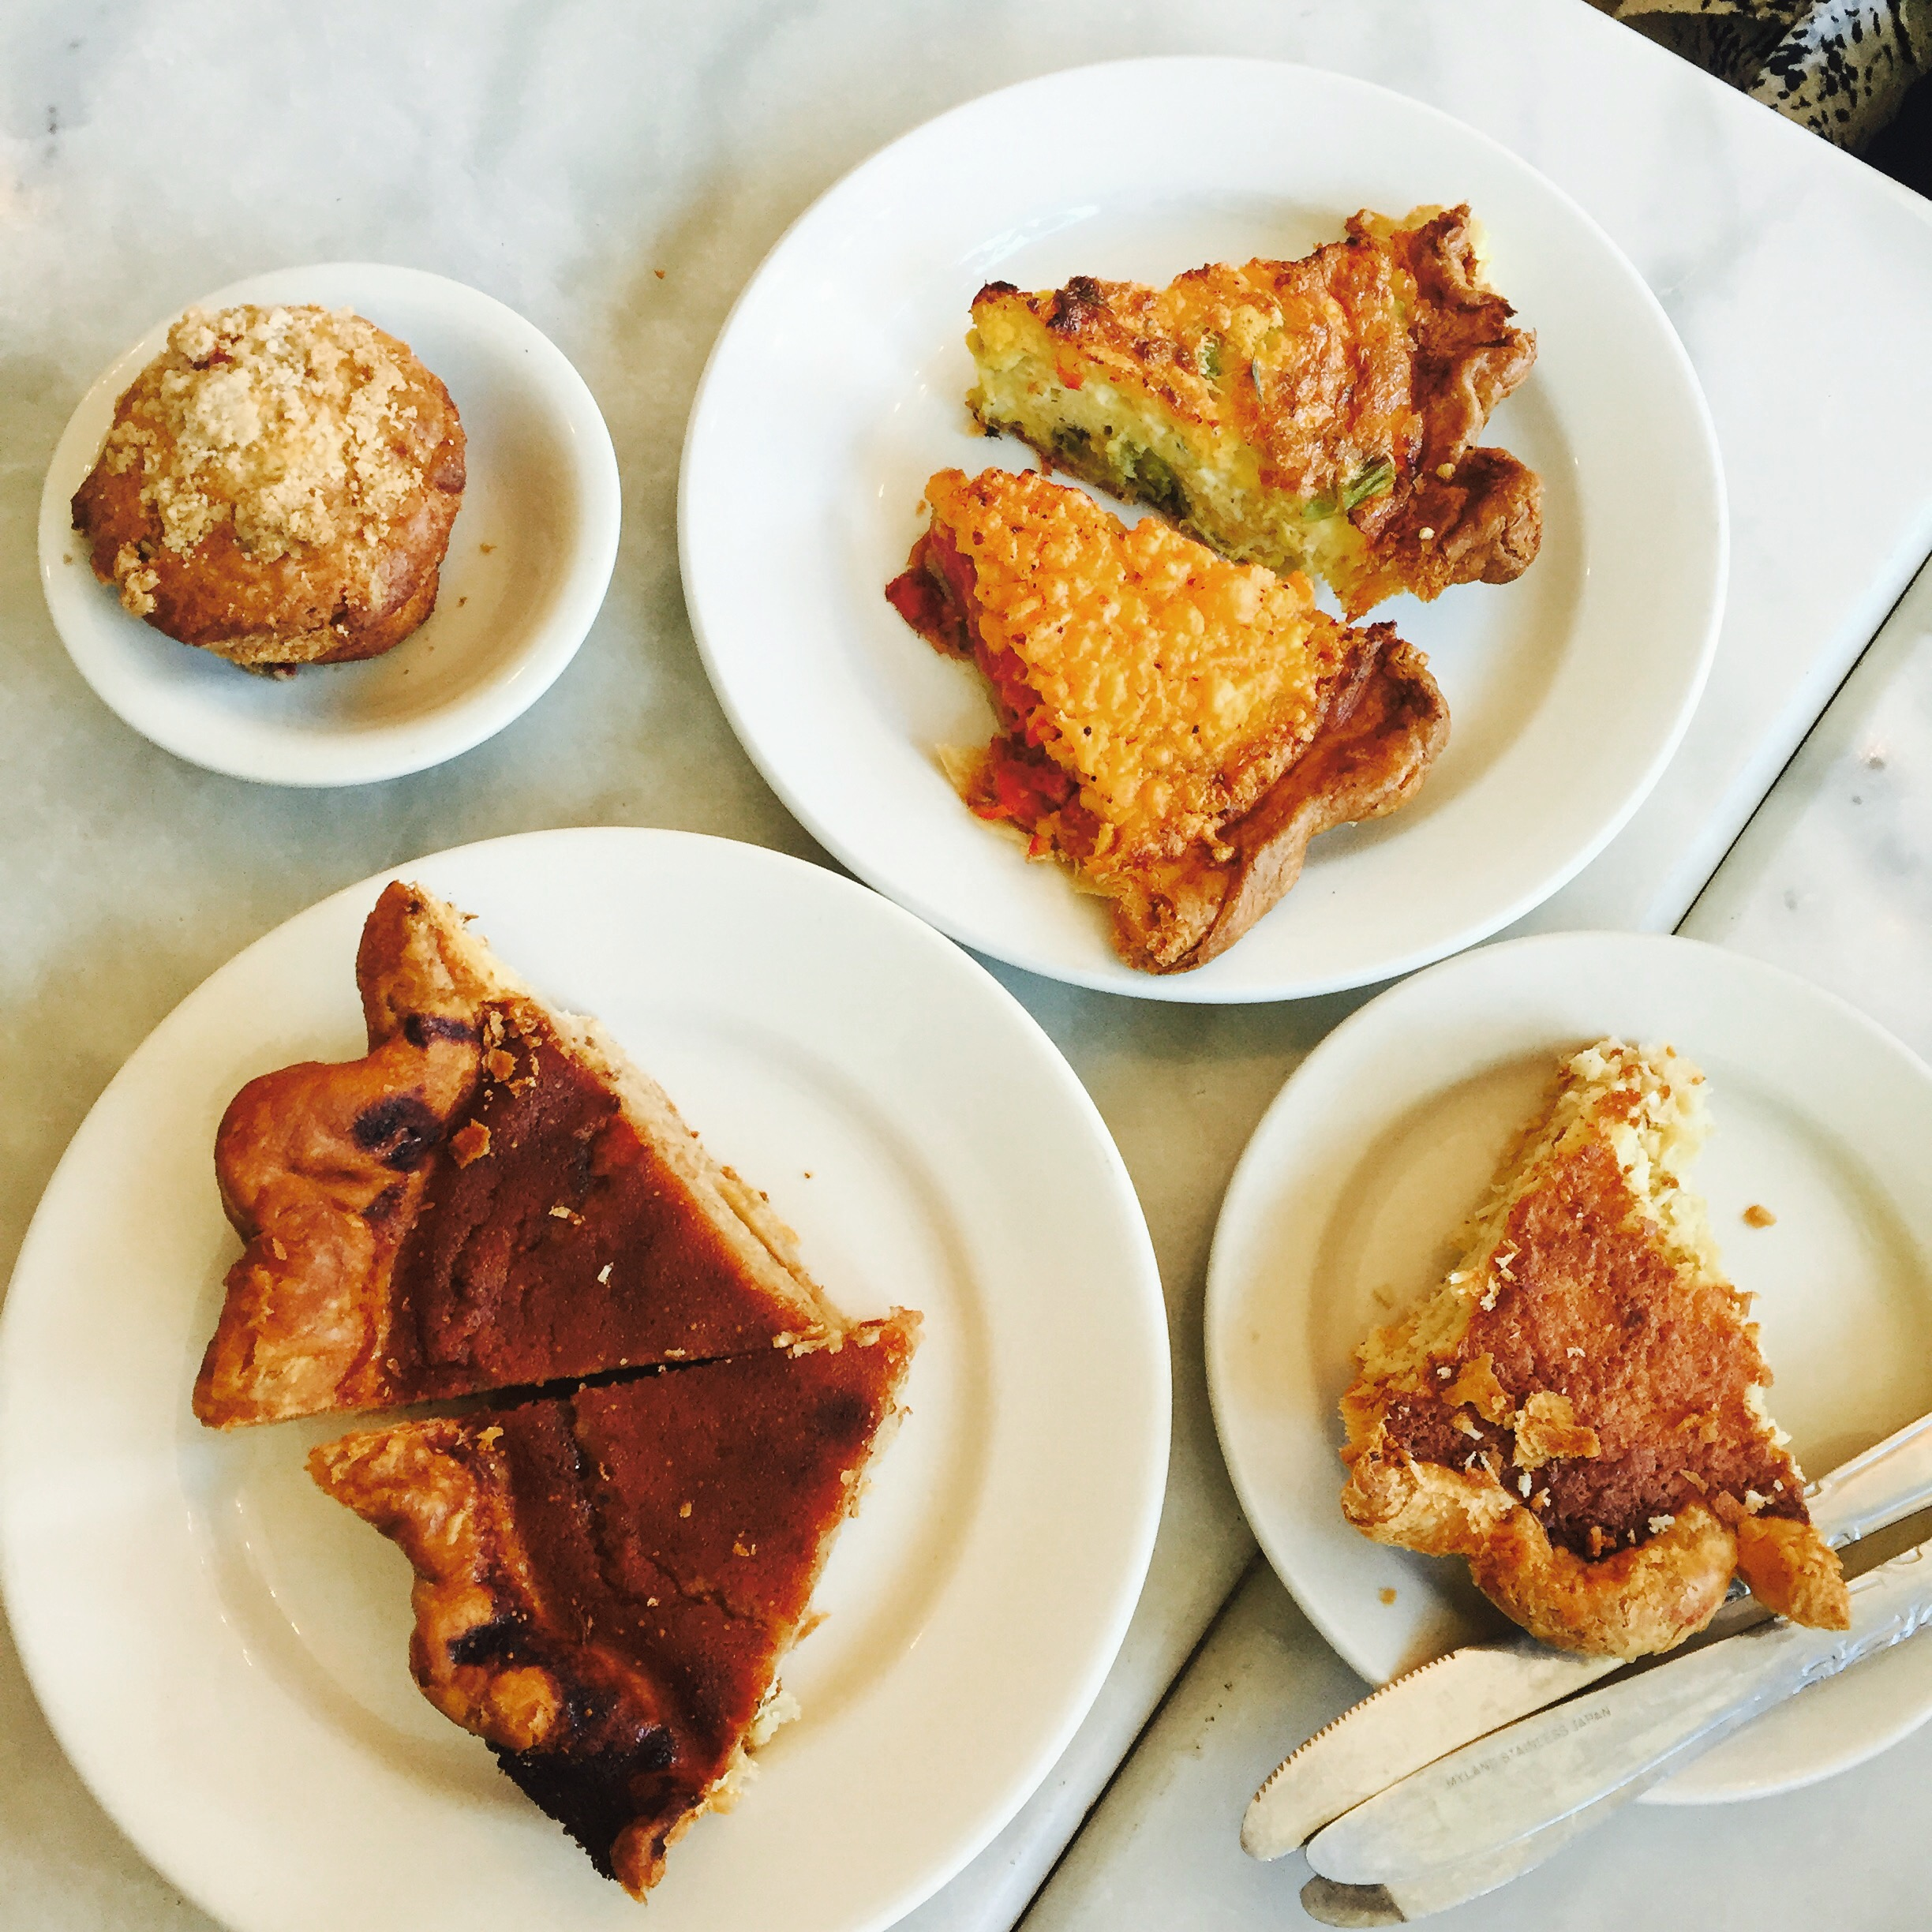 Probably the best meal I have ever had in Brooklyn! Next time you visit Rogers avenue be sure to visit Pels Pie Co!  pictured above: buttermilk pie, coconut pie, mozzarella tomato basil pie, and avocado pie slice!  Website:  Pels Pie Co